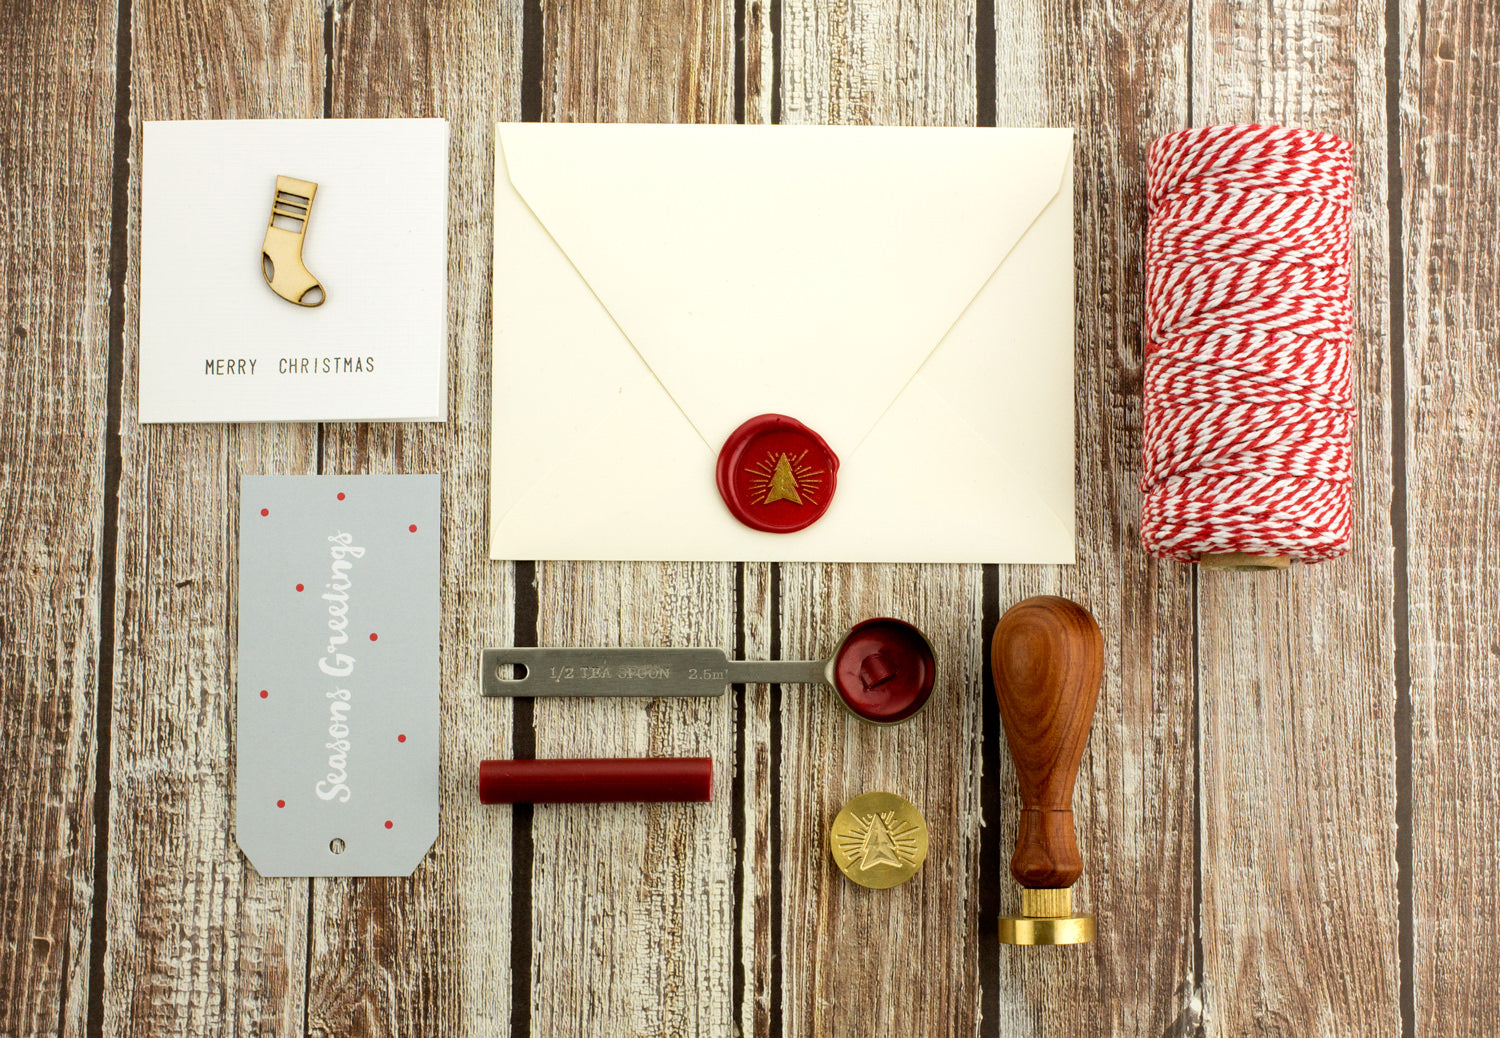 Use a Christmas wax seal stamp from Kustom Haus to decorate your holiday greeting cards and gift wrapping.